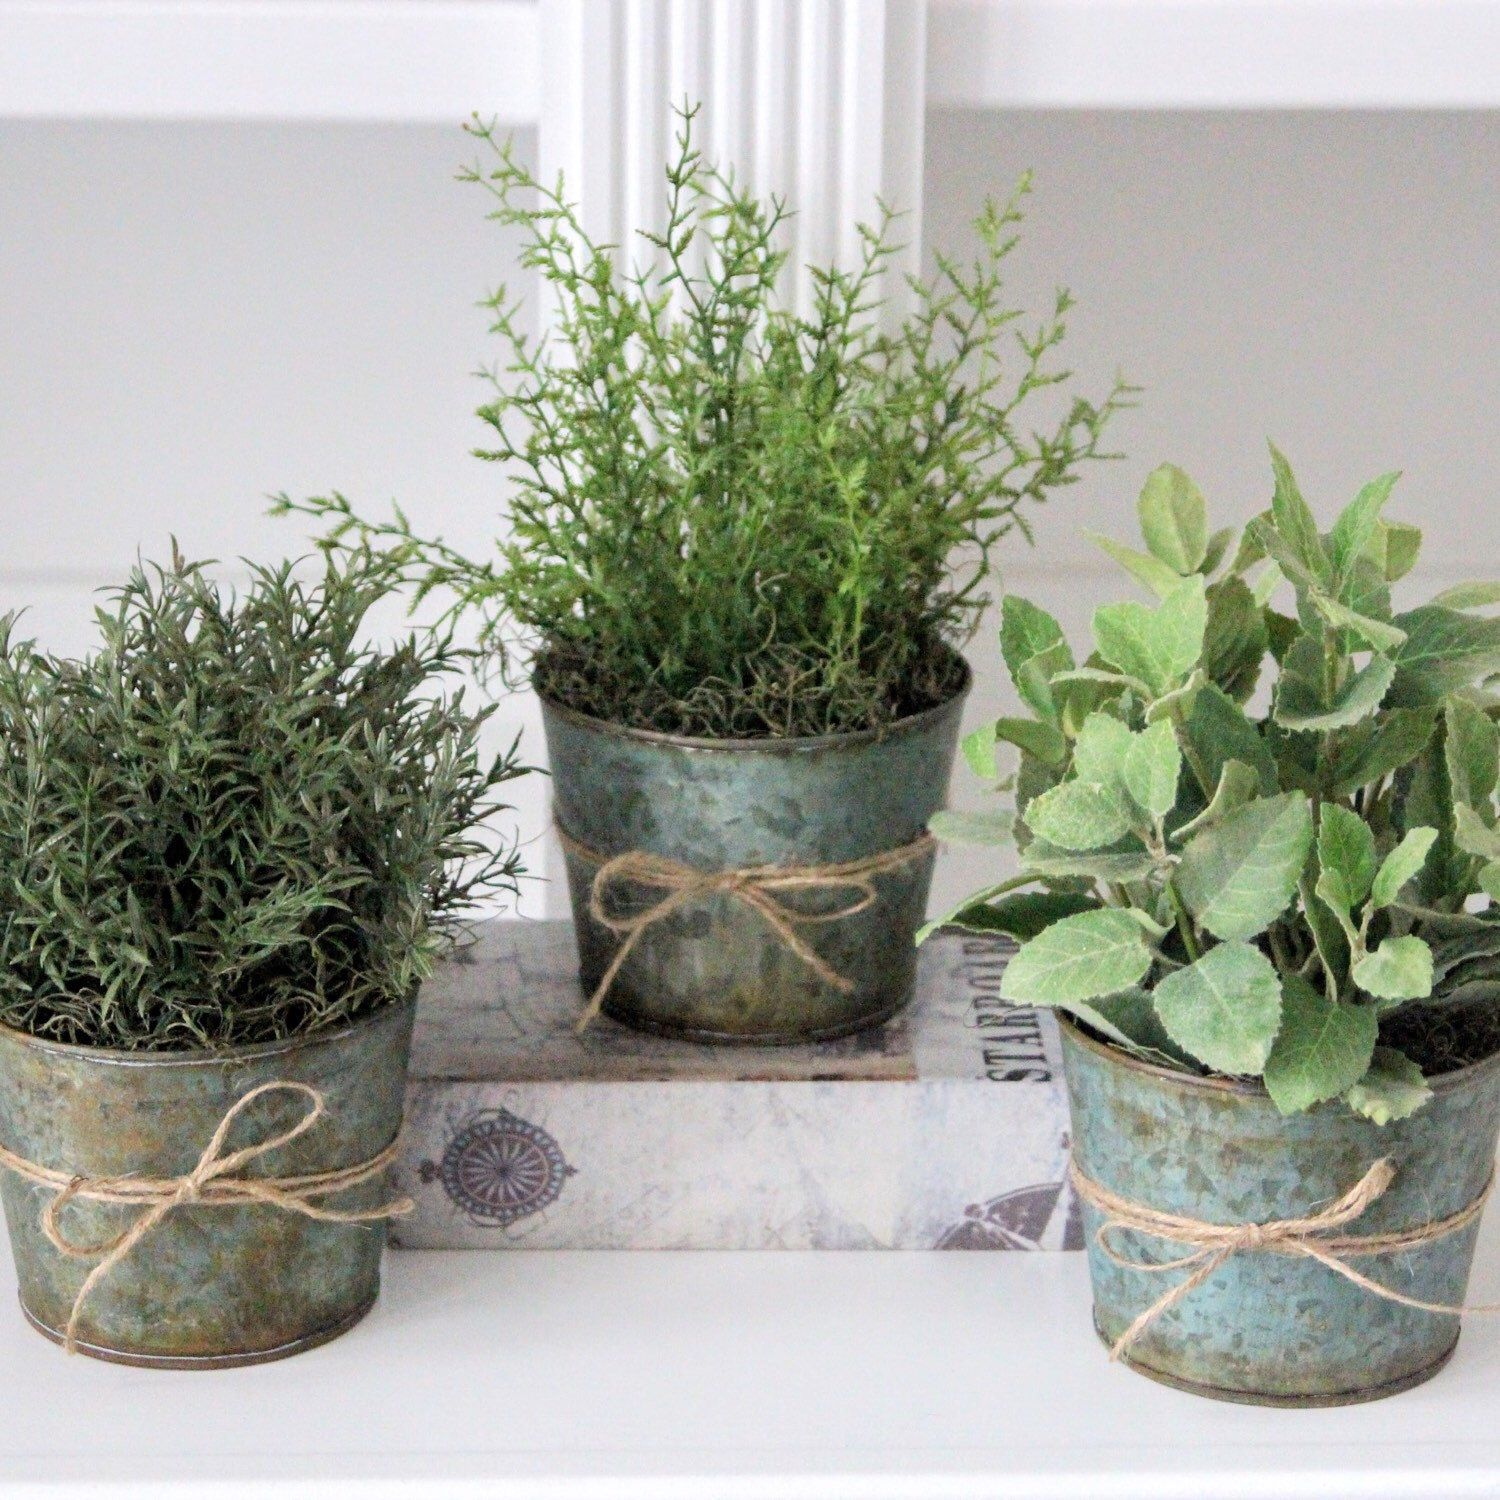 Farmhouse Decor Faux Herbs Faux Greenery Faux Rosemary Mint And Dill In Three Galvanized Pots Galvanized Pots Peonies And Hydrangeas Summer Centerpieces